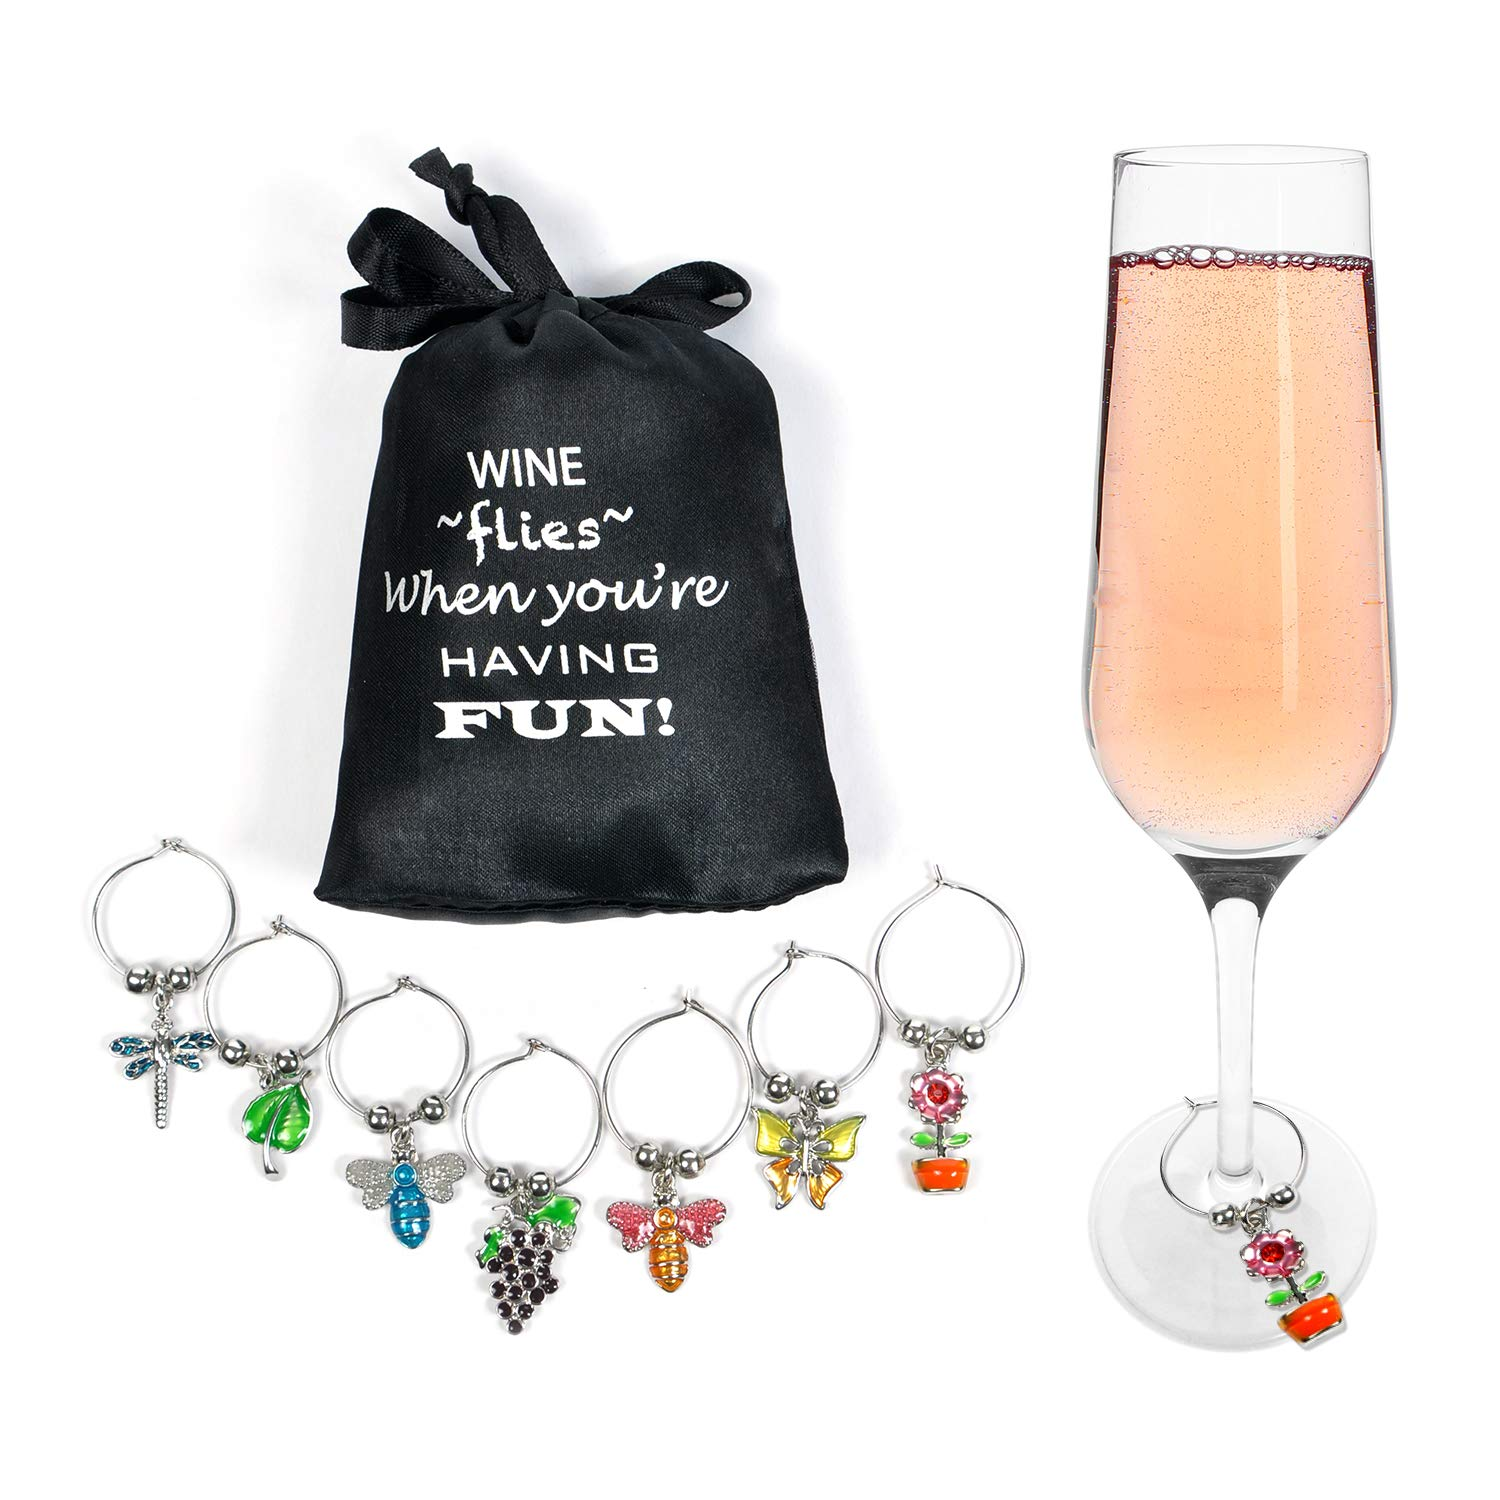 Cork & Leaf Flowers & Insects Wine Glass Markers - Set of 7, Wine Charms, Wine Accessories and Gifts, Drink Markers, Wine Glass Charms, Includes a Black Sateen Storage Bag by Cork & Leaf